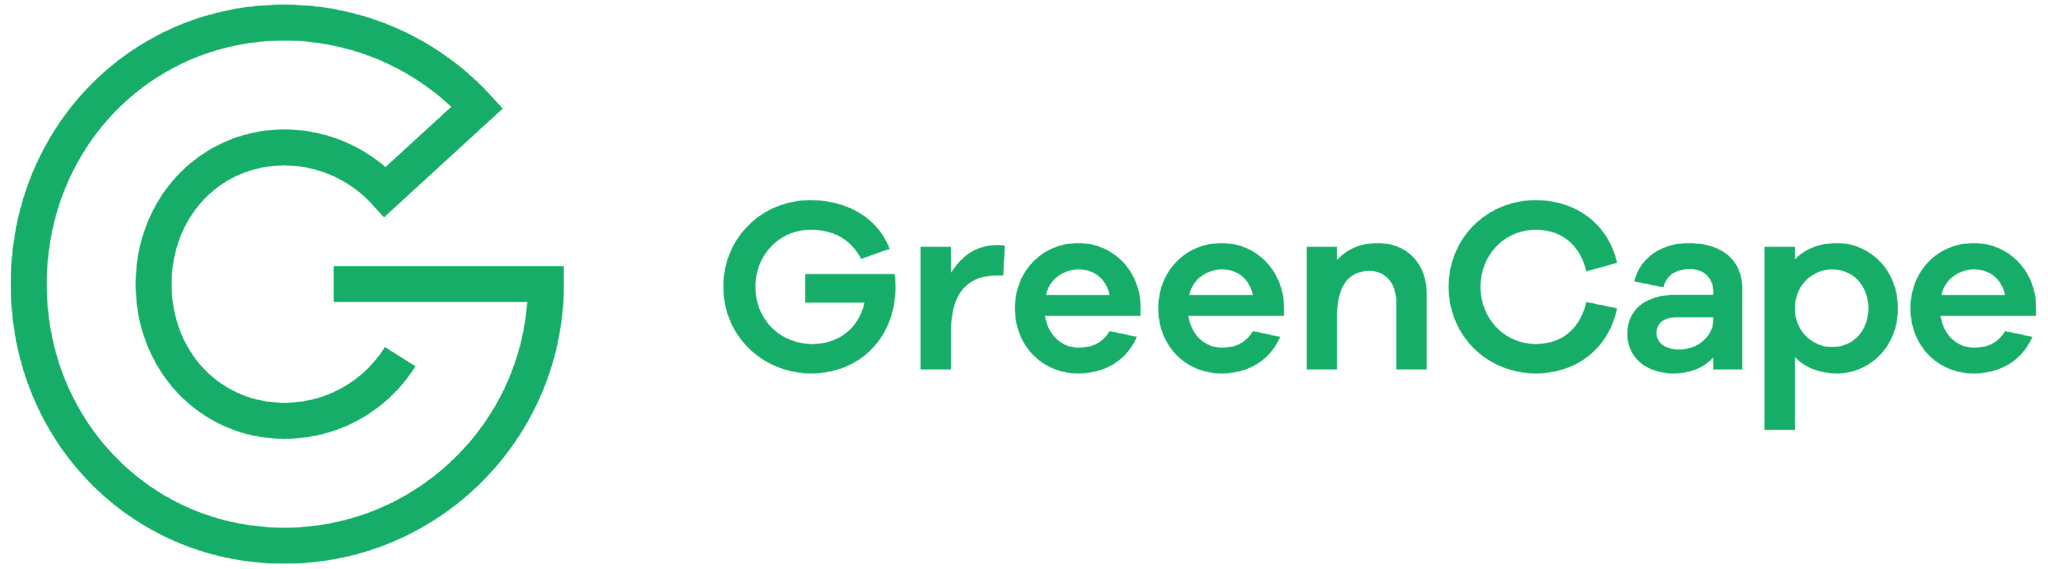 Greencape Logo